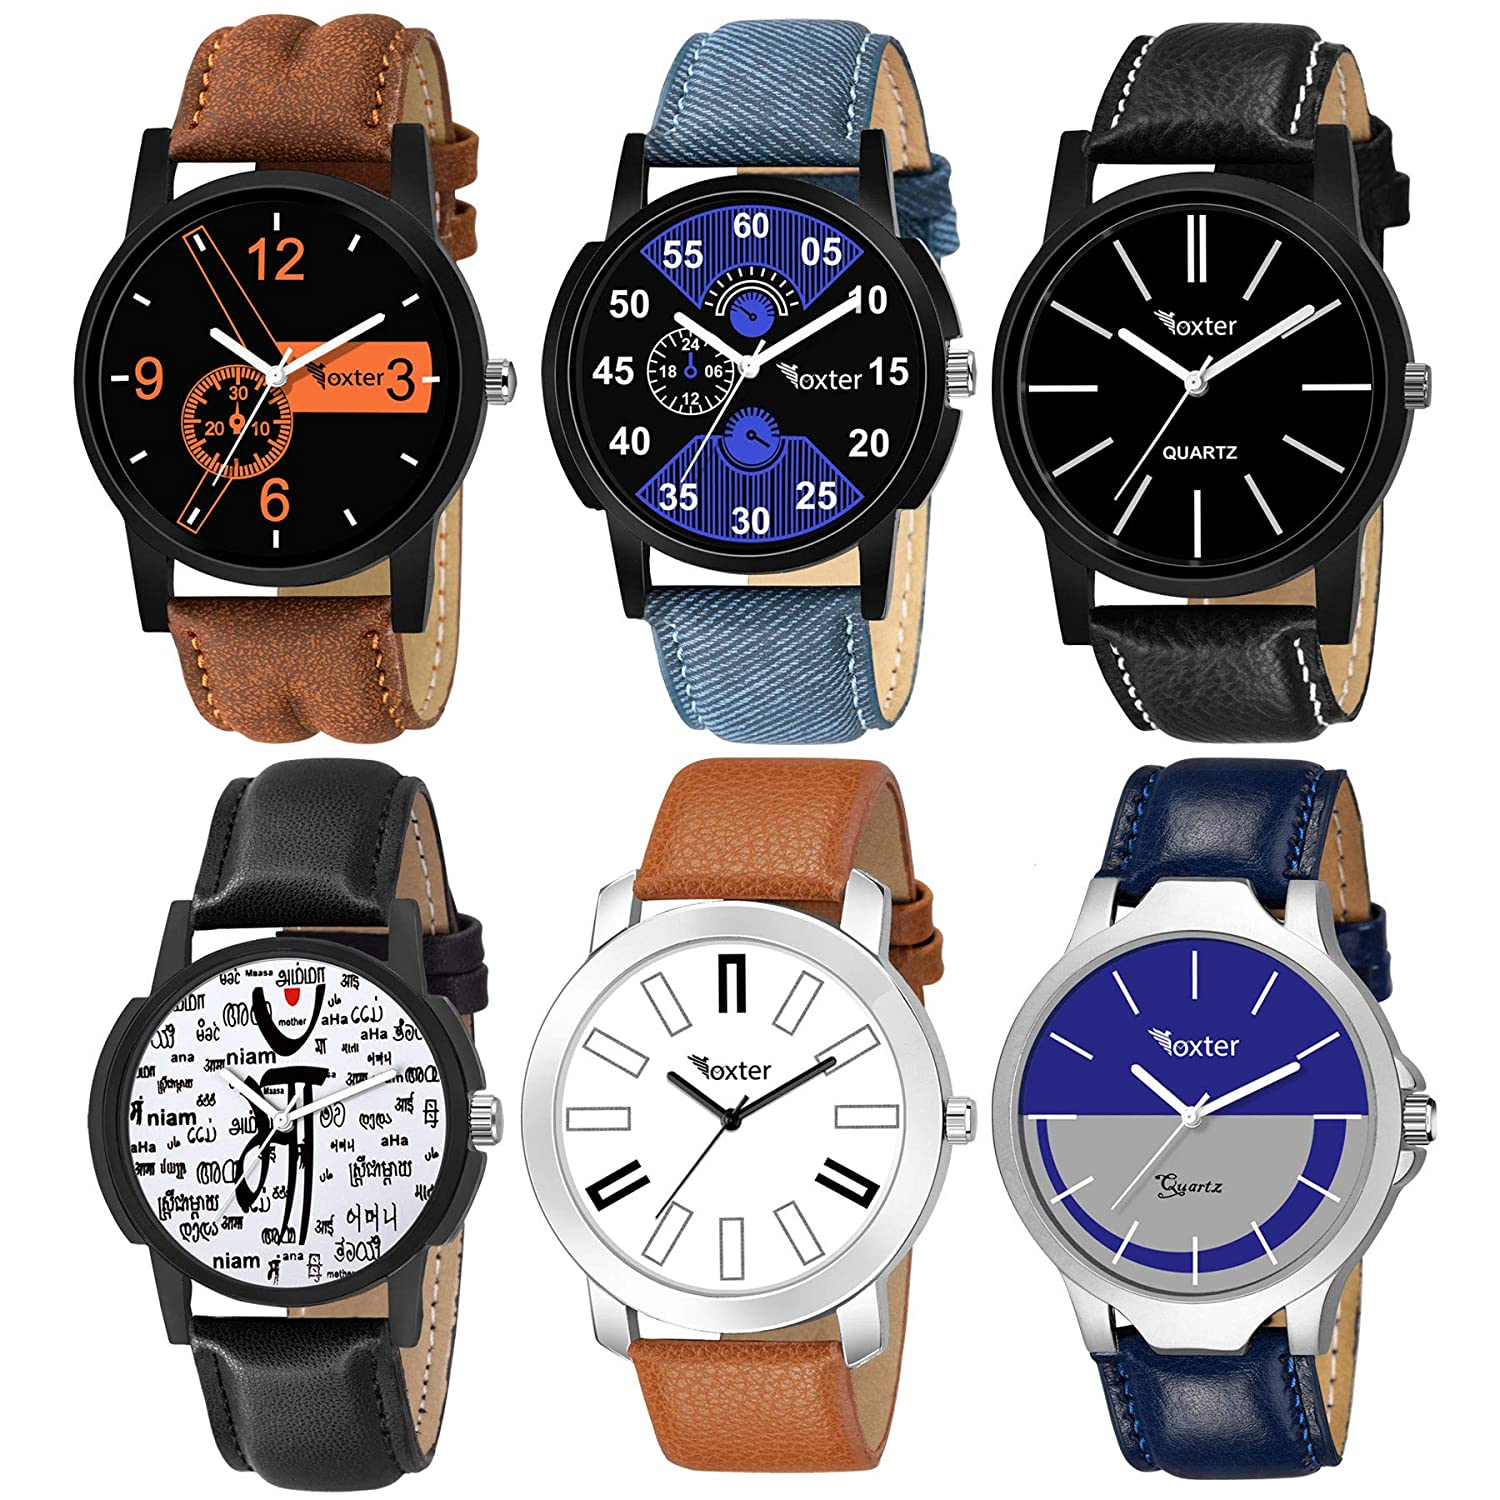 Foxter Pack of 6 Multicolour Analog Analog Watch for Men and Boys@Rs.499